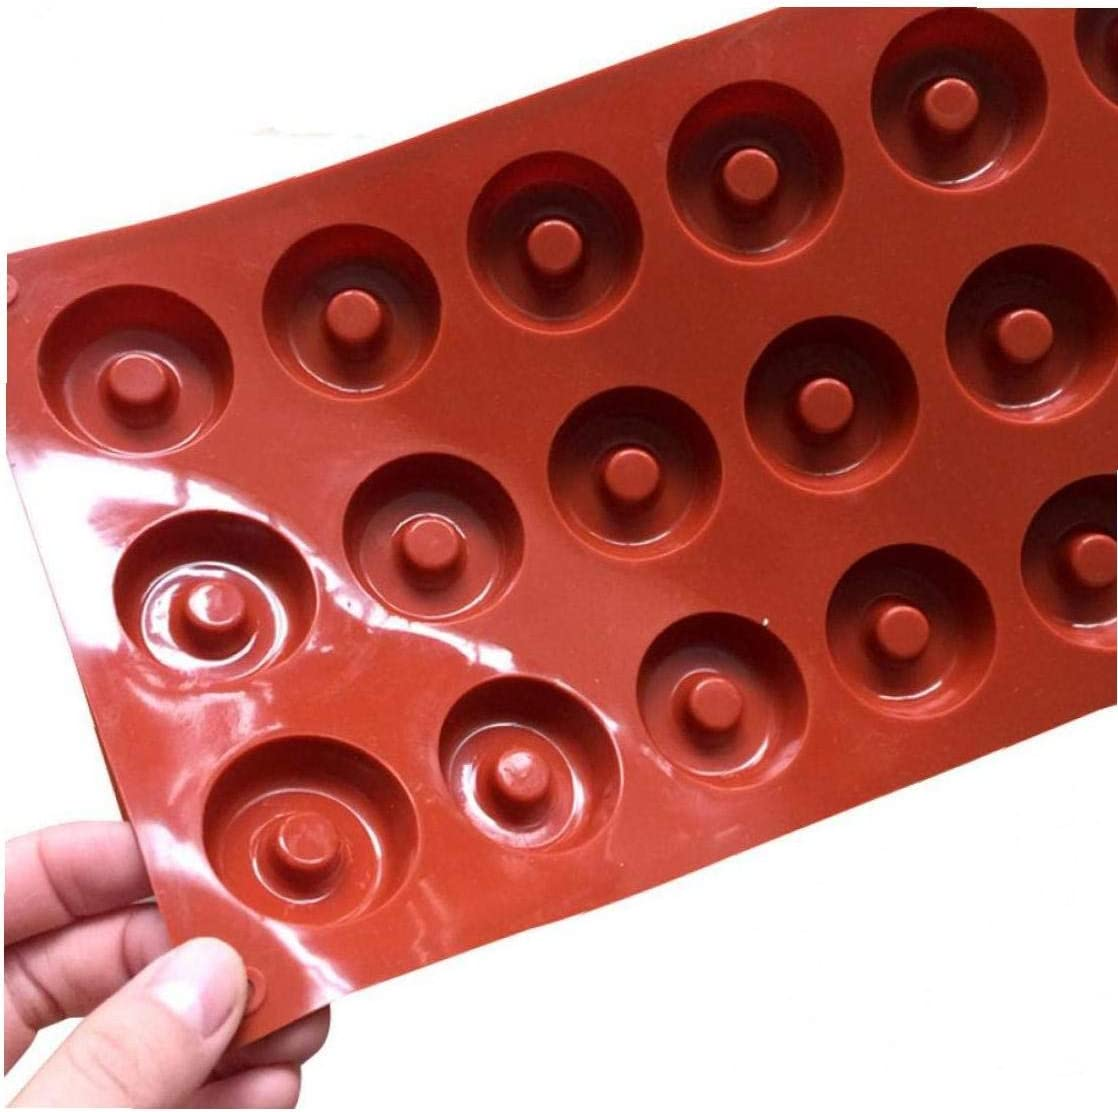 18 Cavity Silicone Donuts Mold Cake Biscuit We OFFer at cheap prices Cupcake Indefinitely Chocolate Do